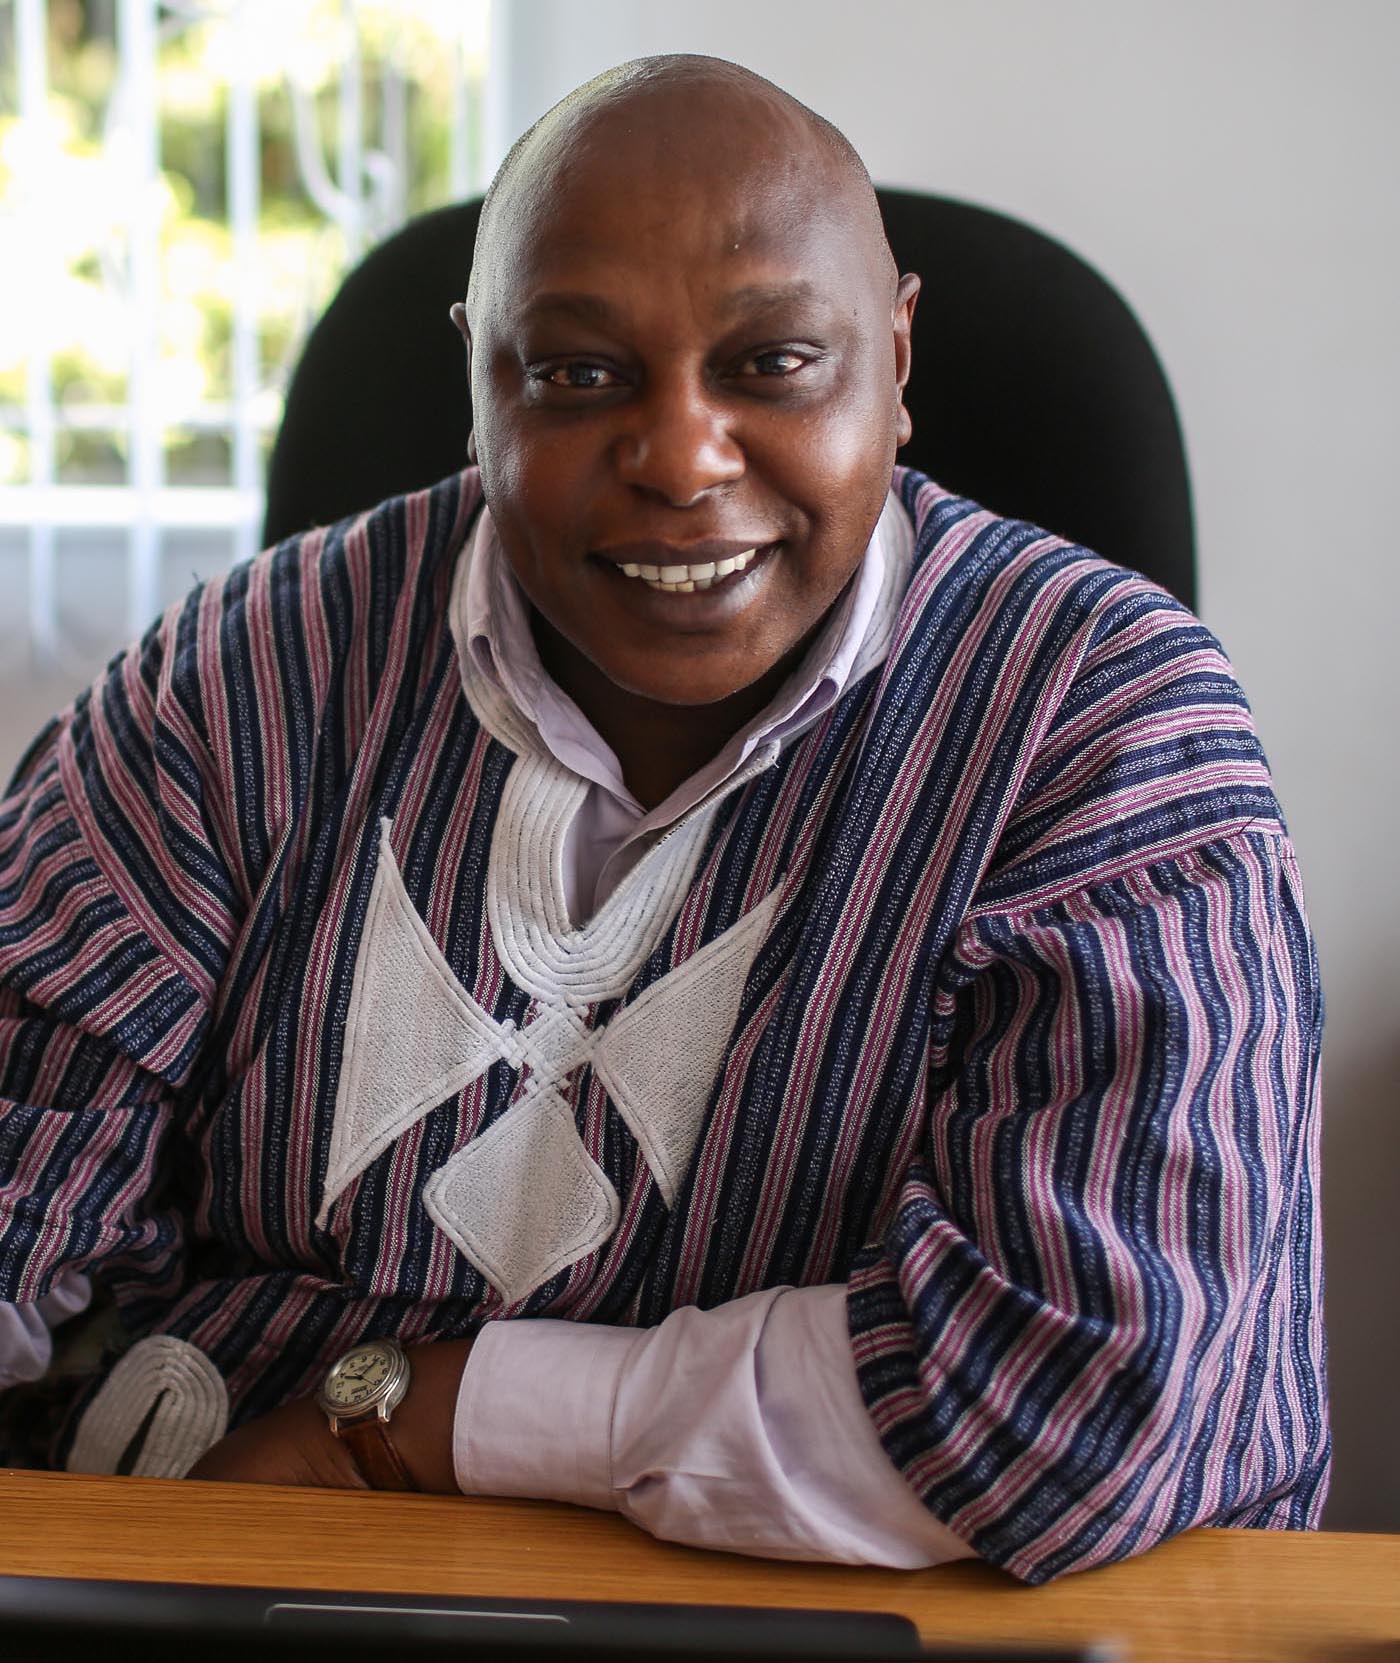 'Personal empire': Why and how Maina Kiai plotted ouster of InformAction boss